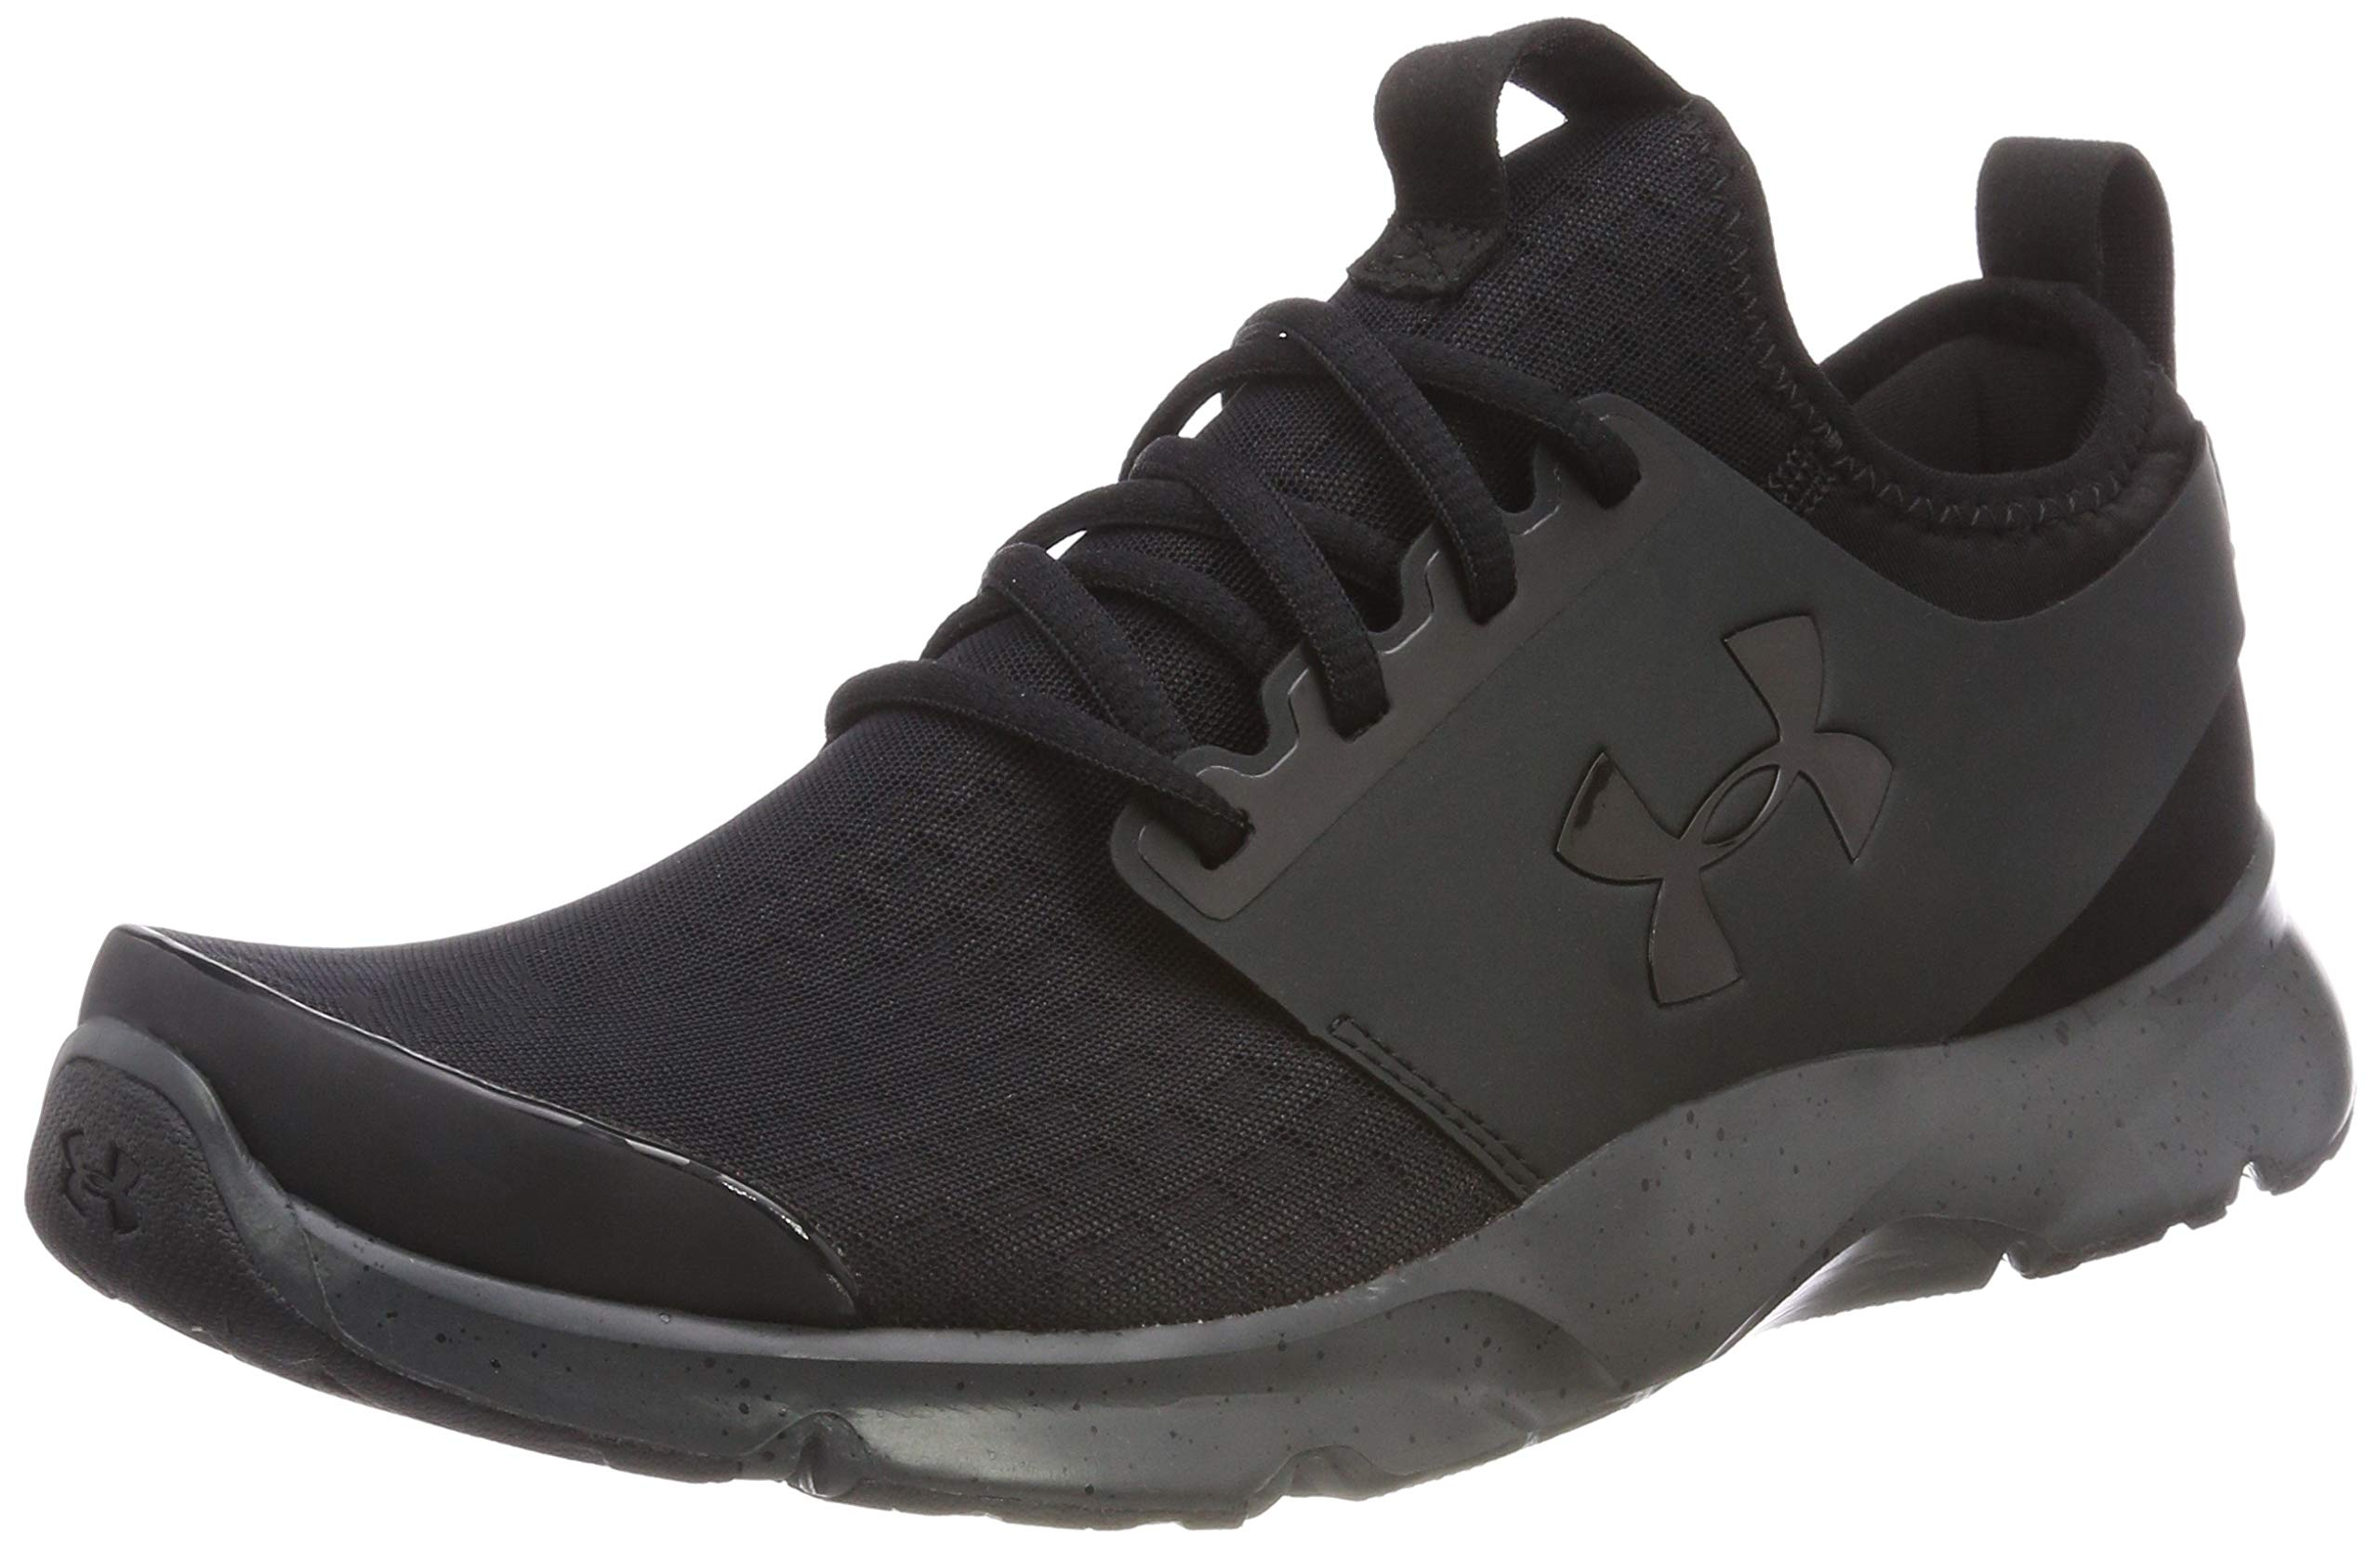 Running Stealth De HommeNoir Gray Under DriftChaussures Compétition Eu 45 Armour black44 F1JT5l3uKc